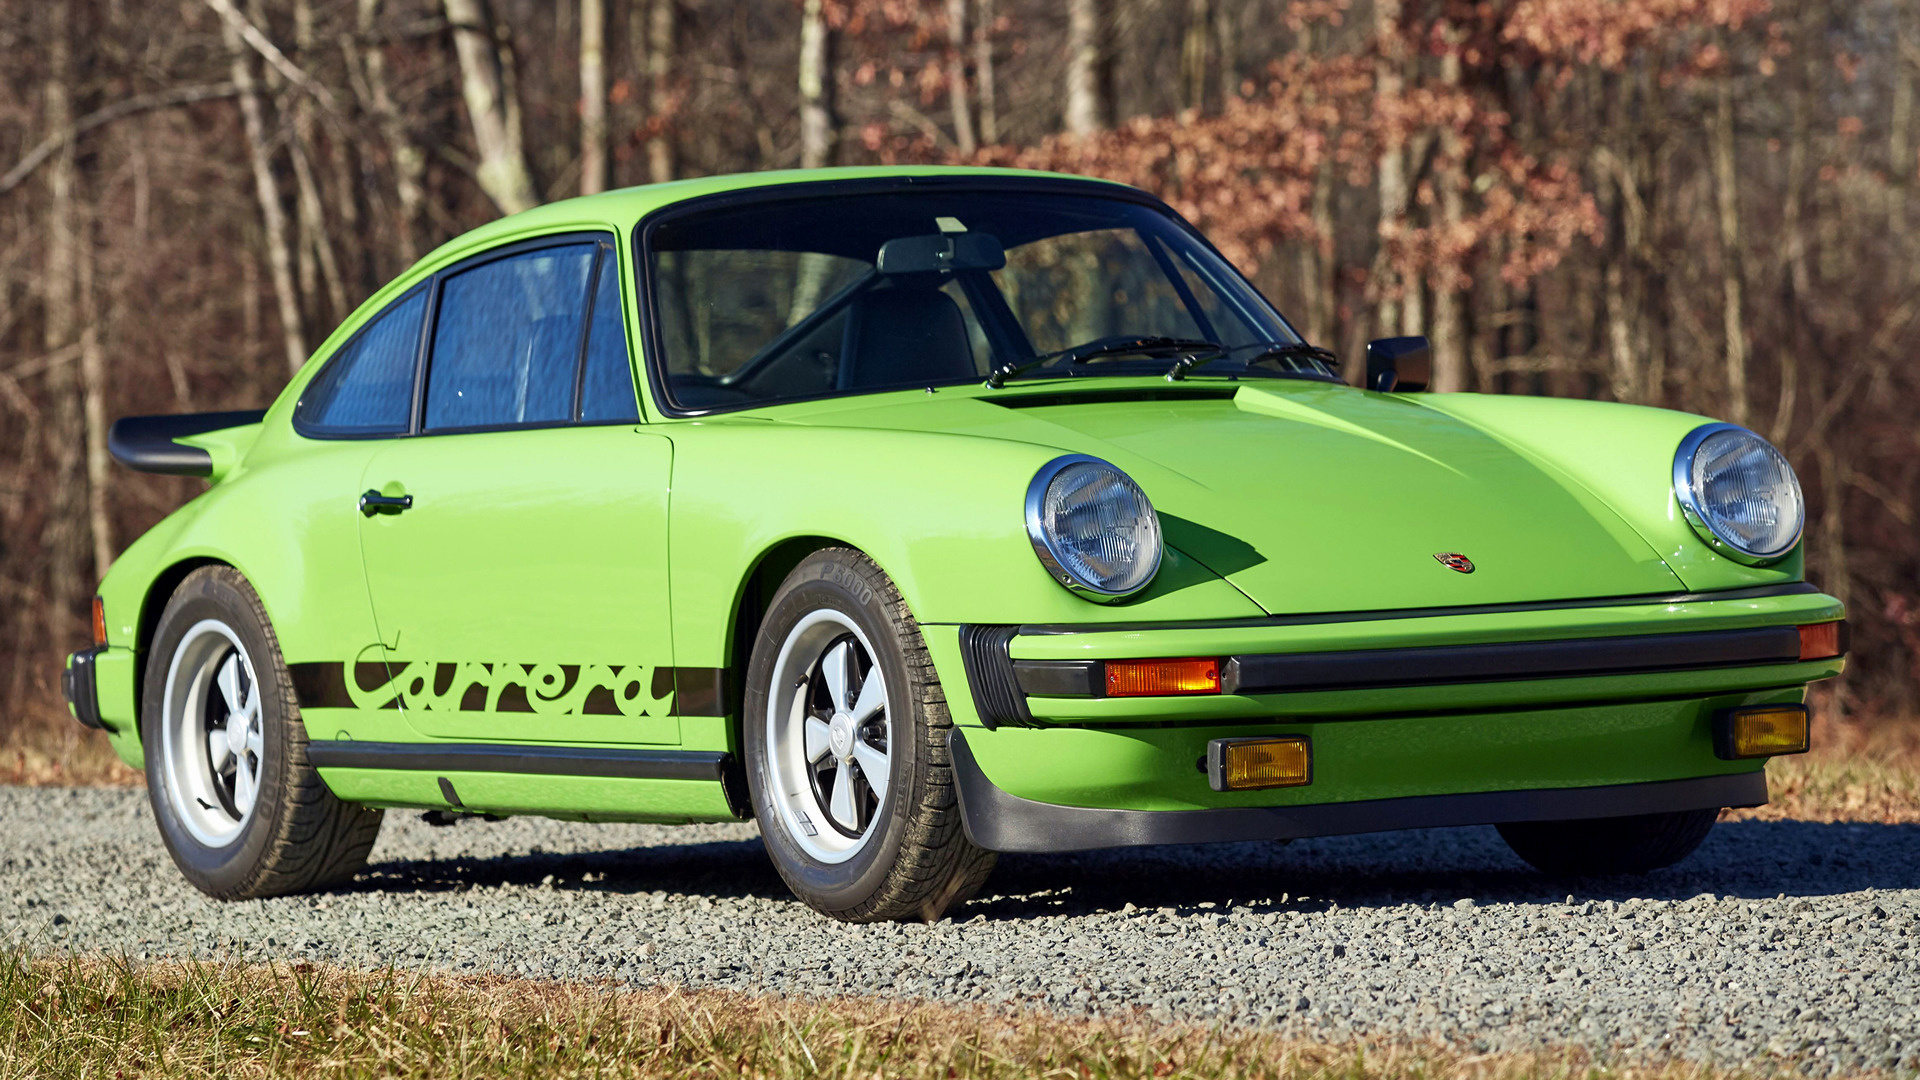 Porsche 911 Carrera With Whale Tail 1974 Wallpapers And